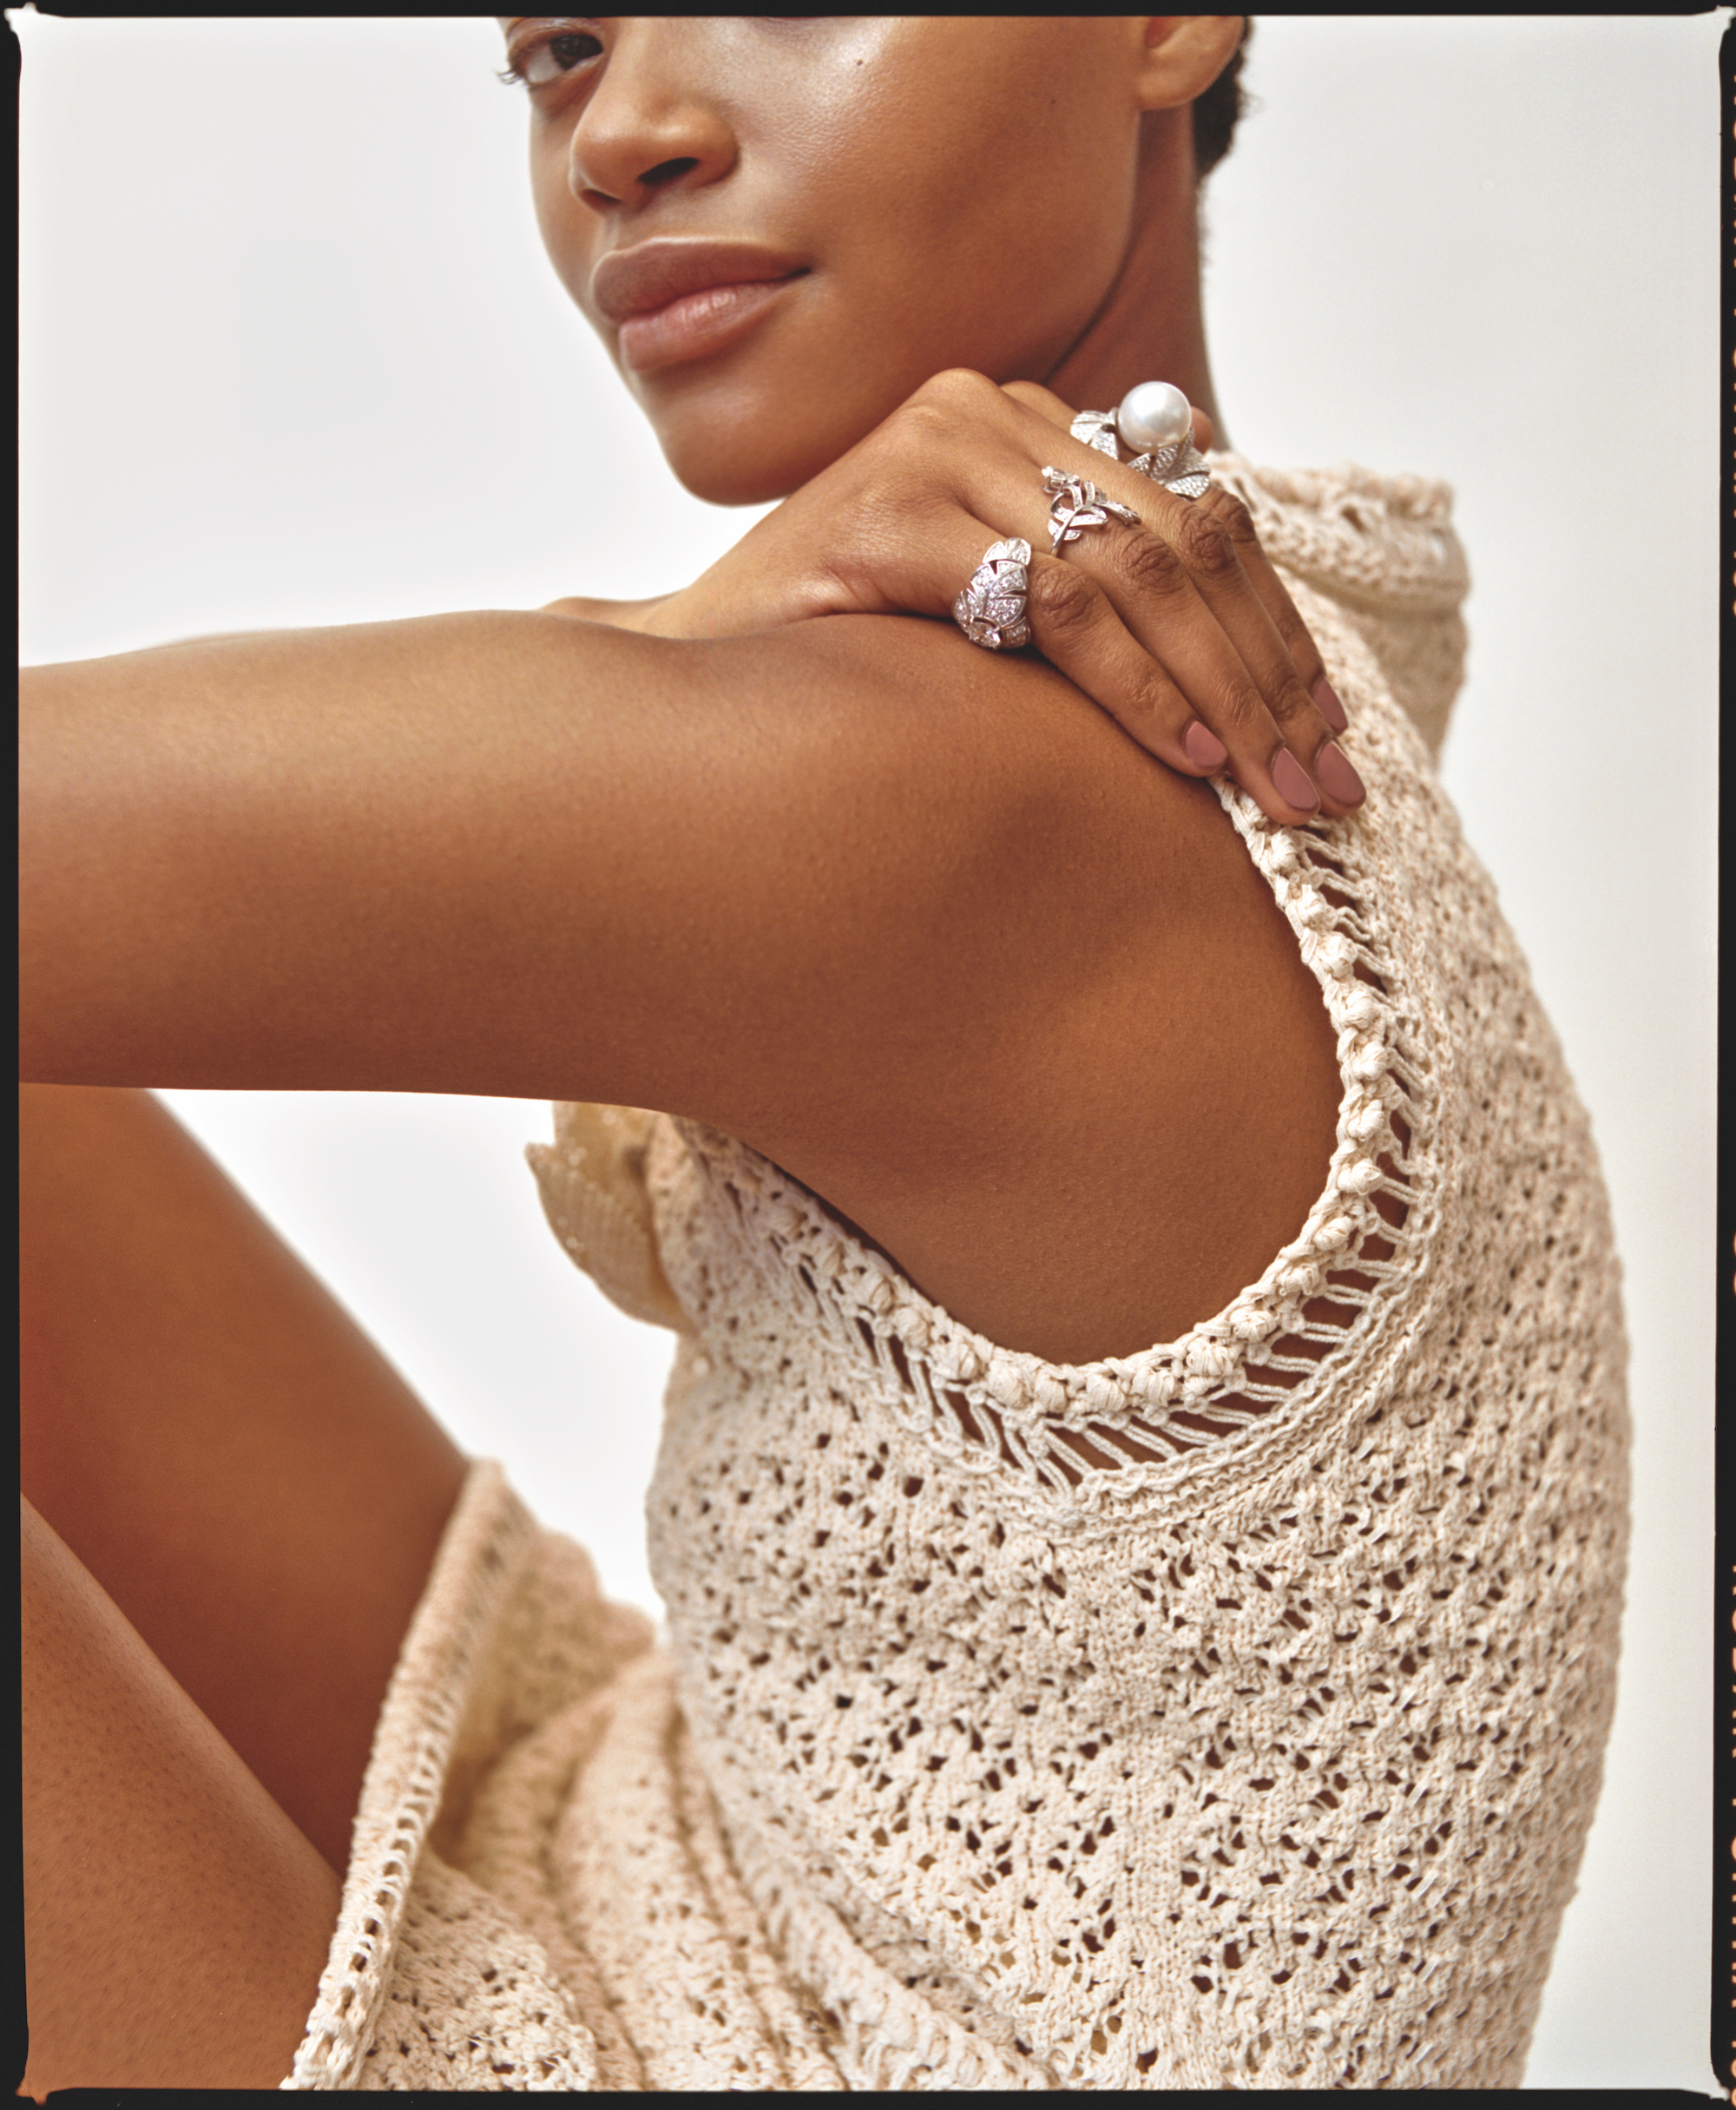 Chanel Beauty features in our Spring issue knitted simple top with two silver rings